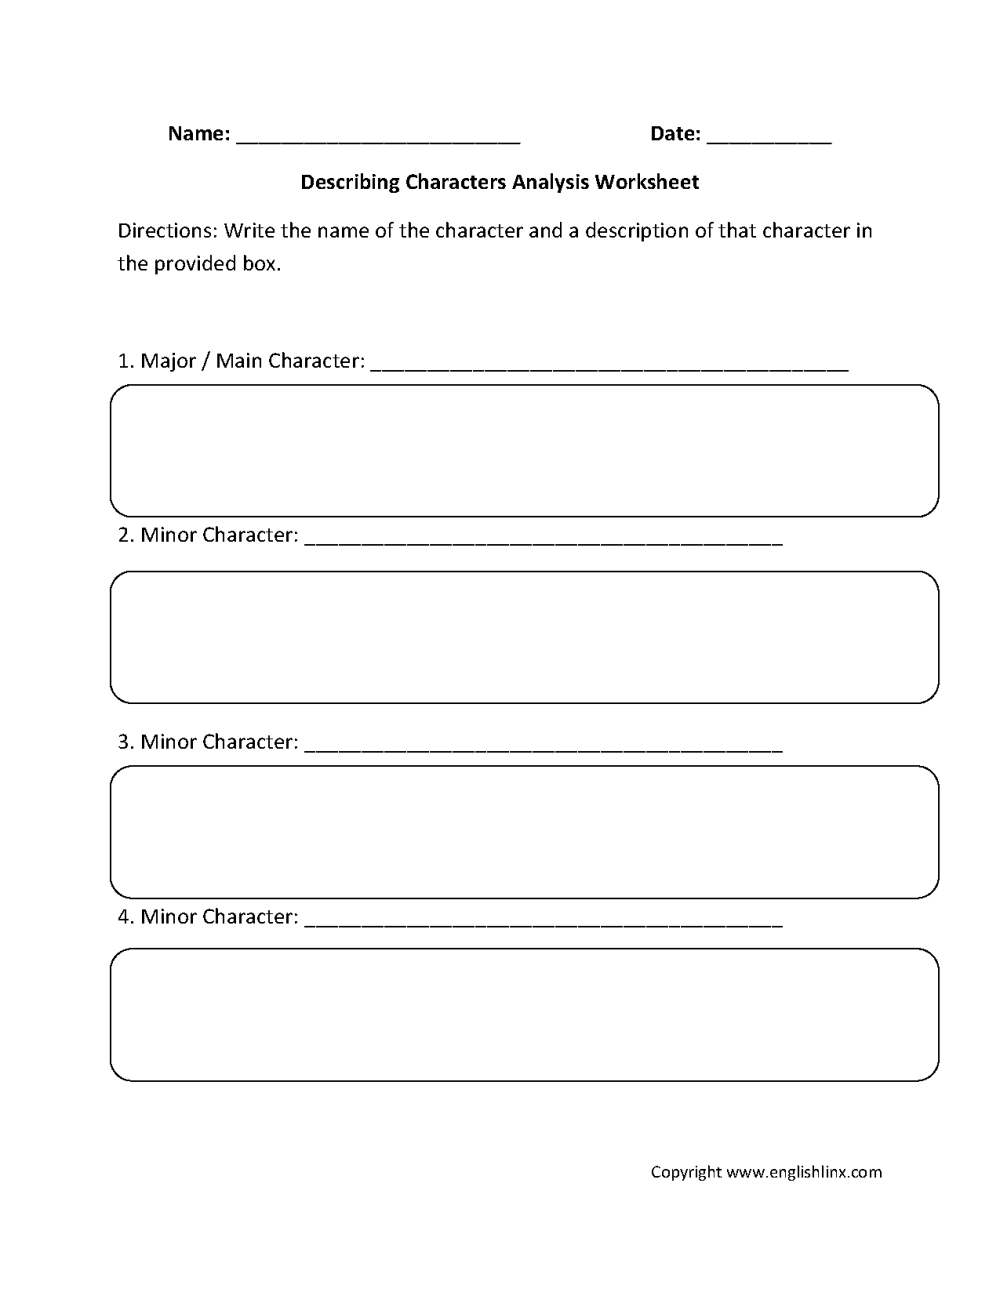 medium resolution of Englishlinx.com   Character Analysis Worksheets